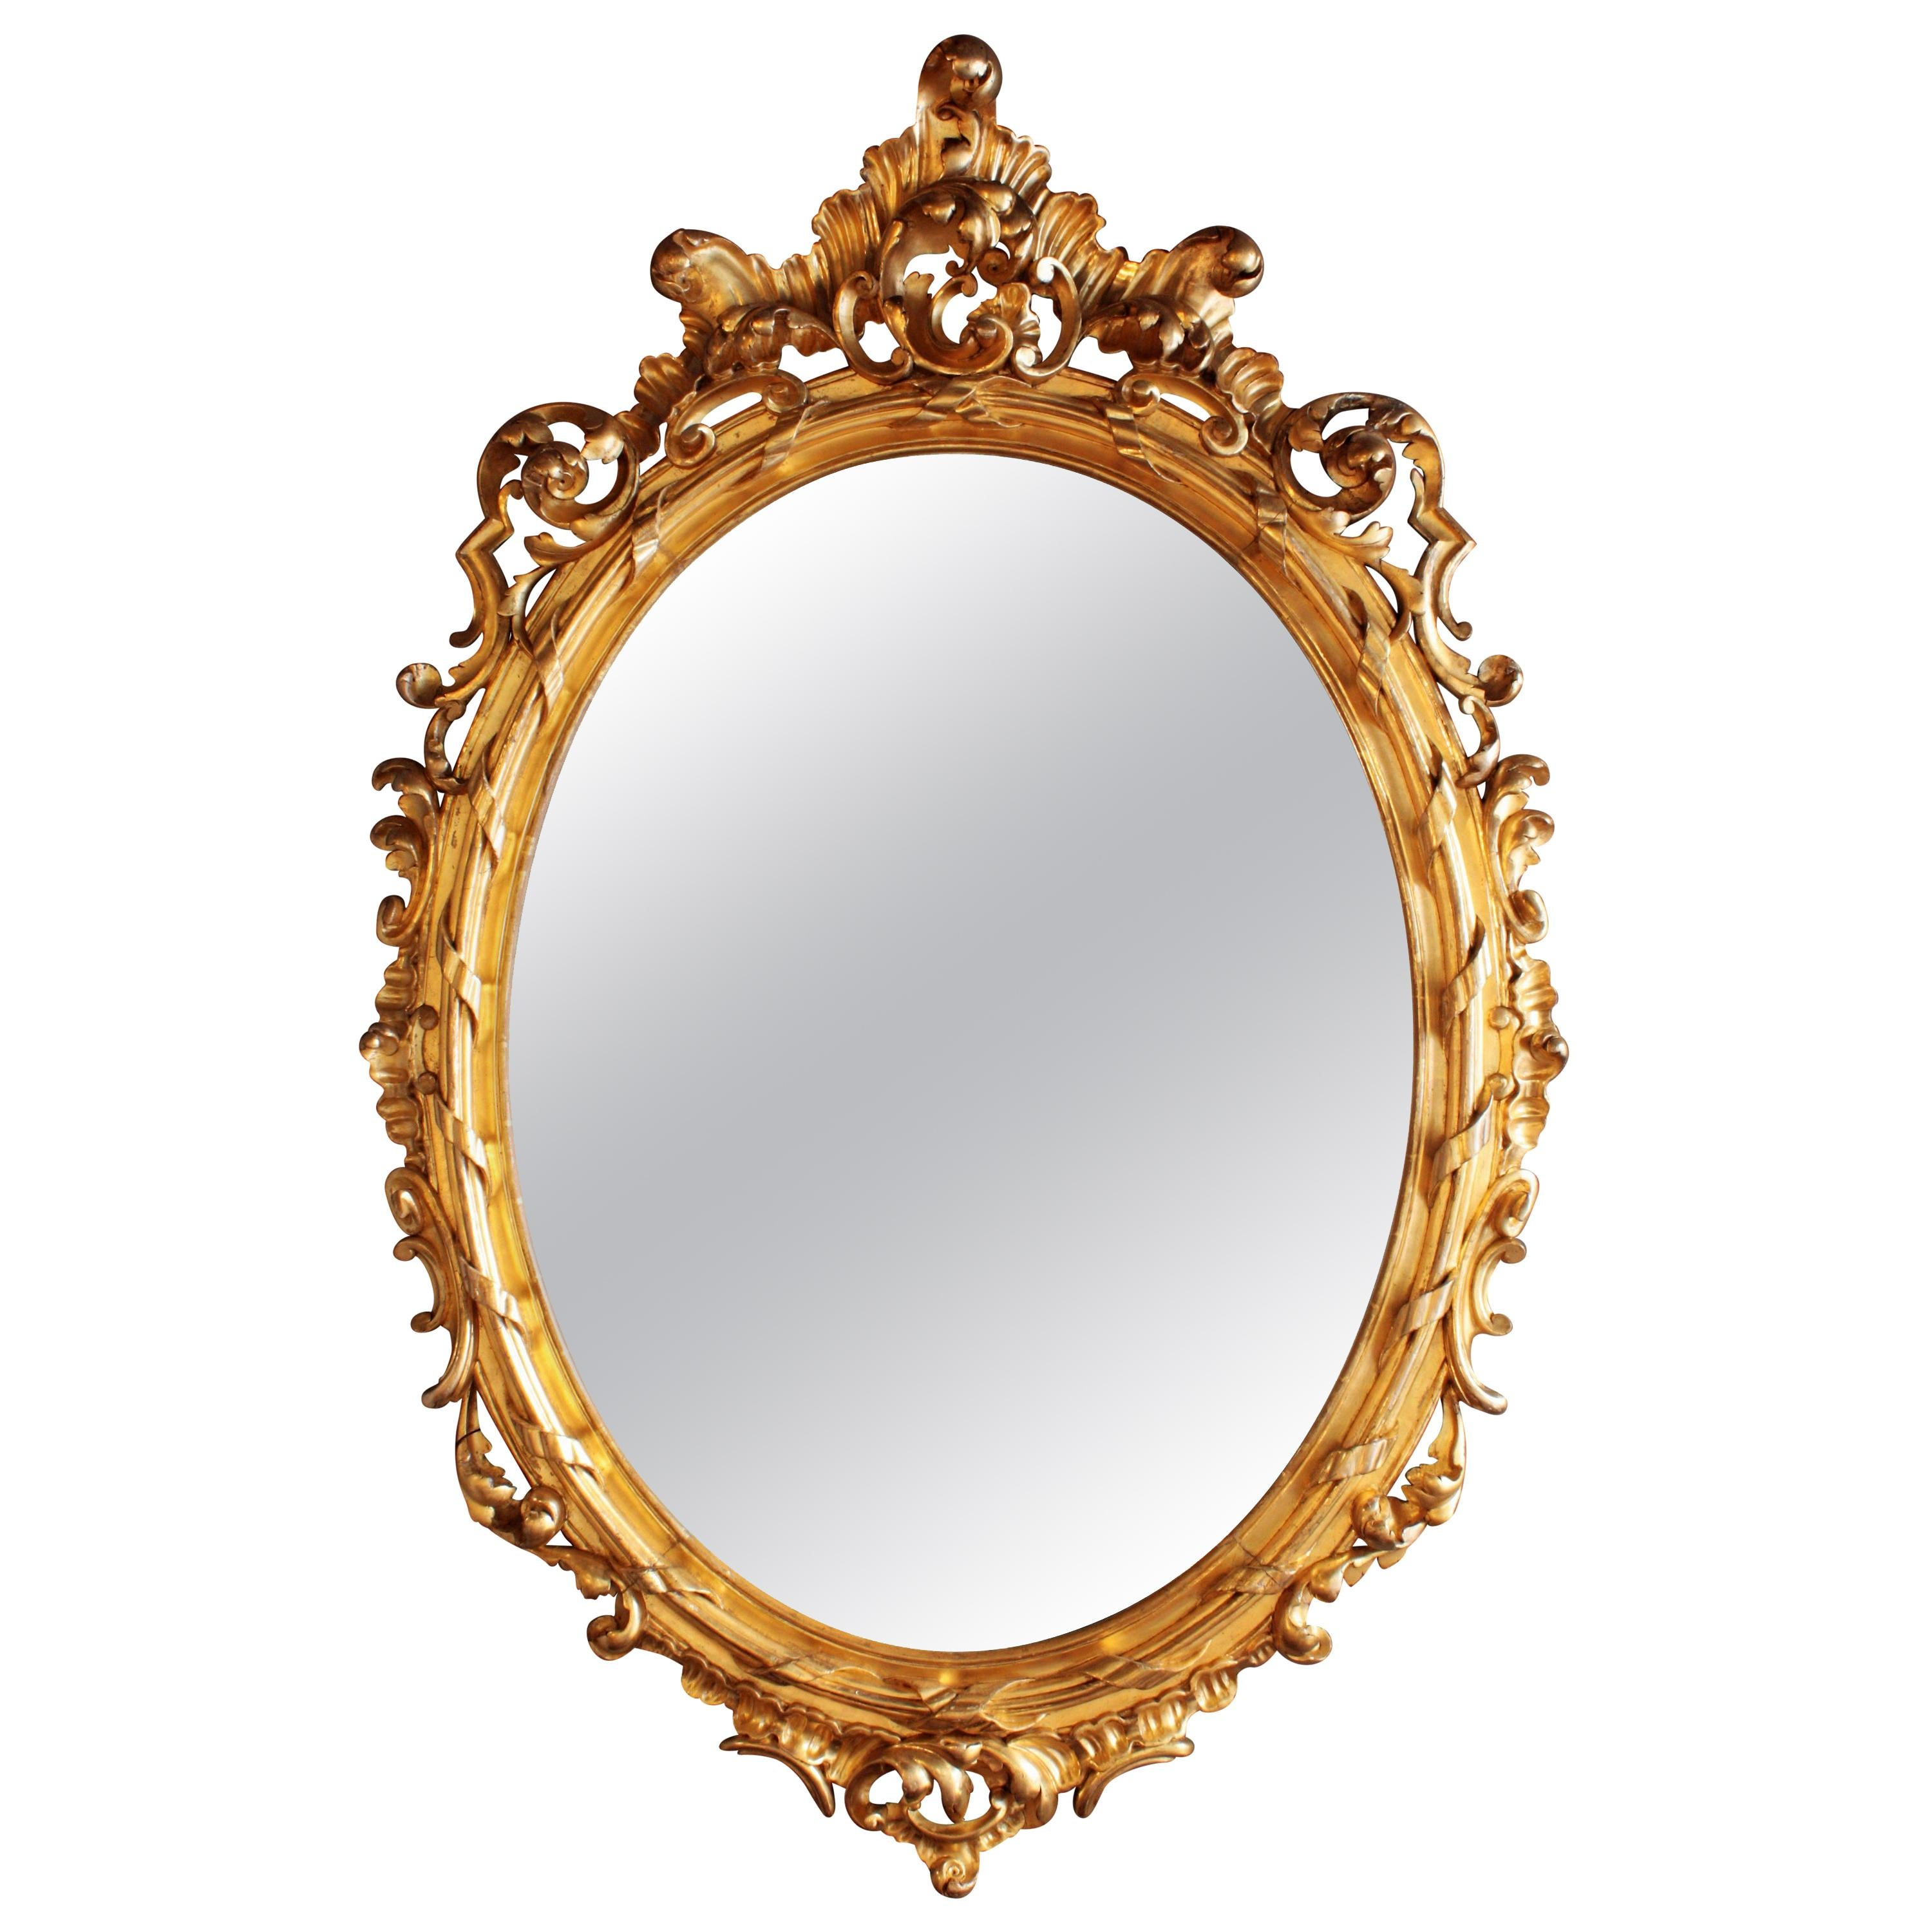 French Rococo Carved Giltwood Palatial Oval Mirror